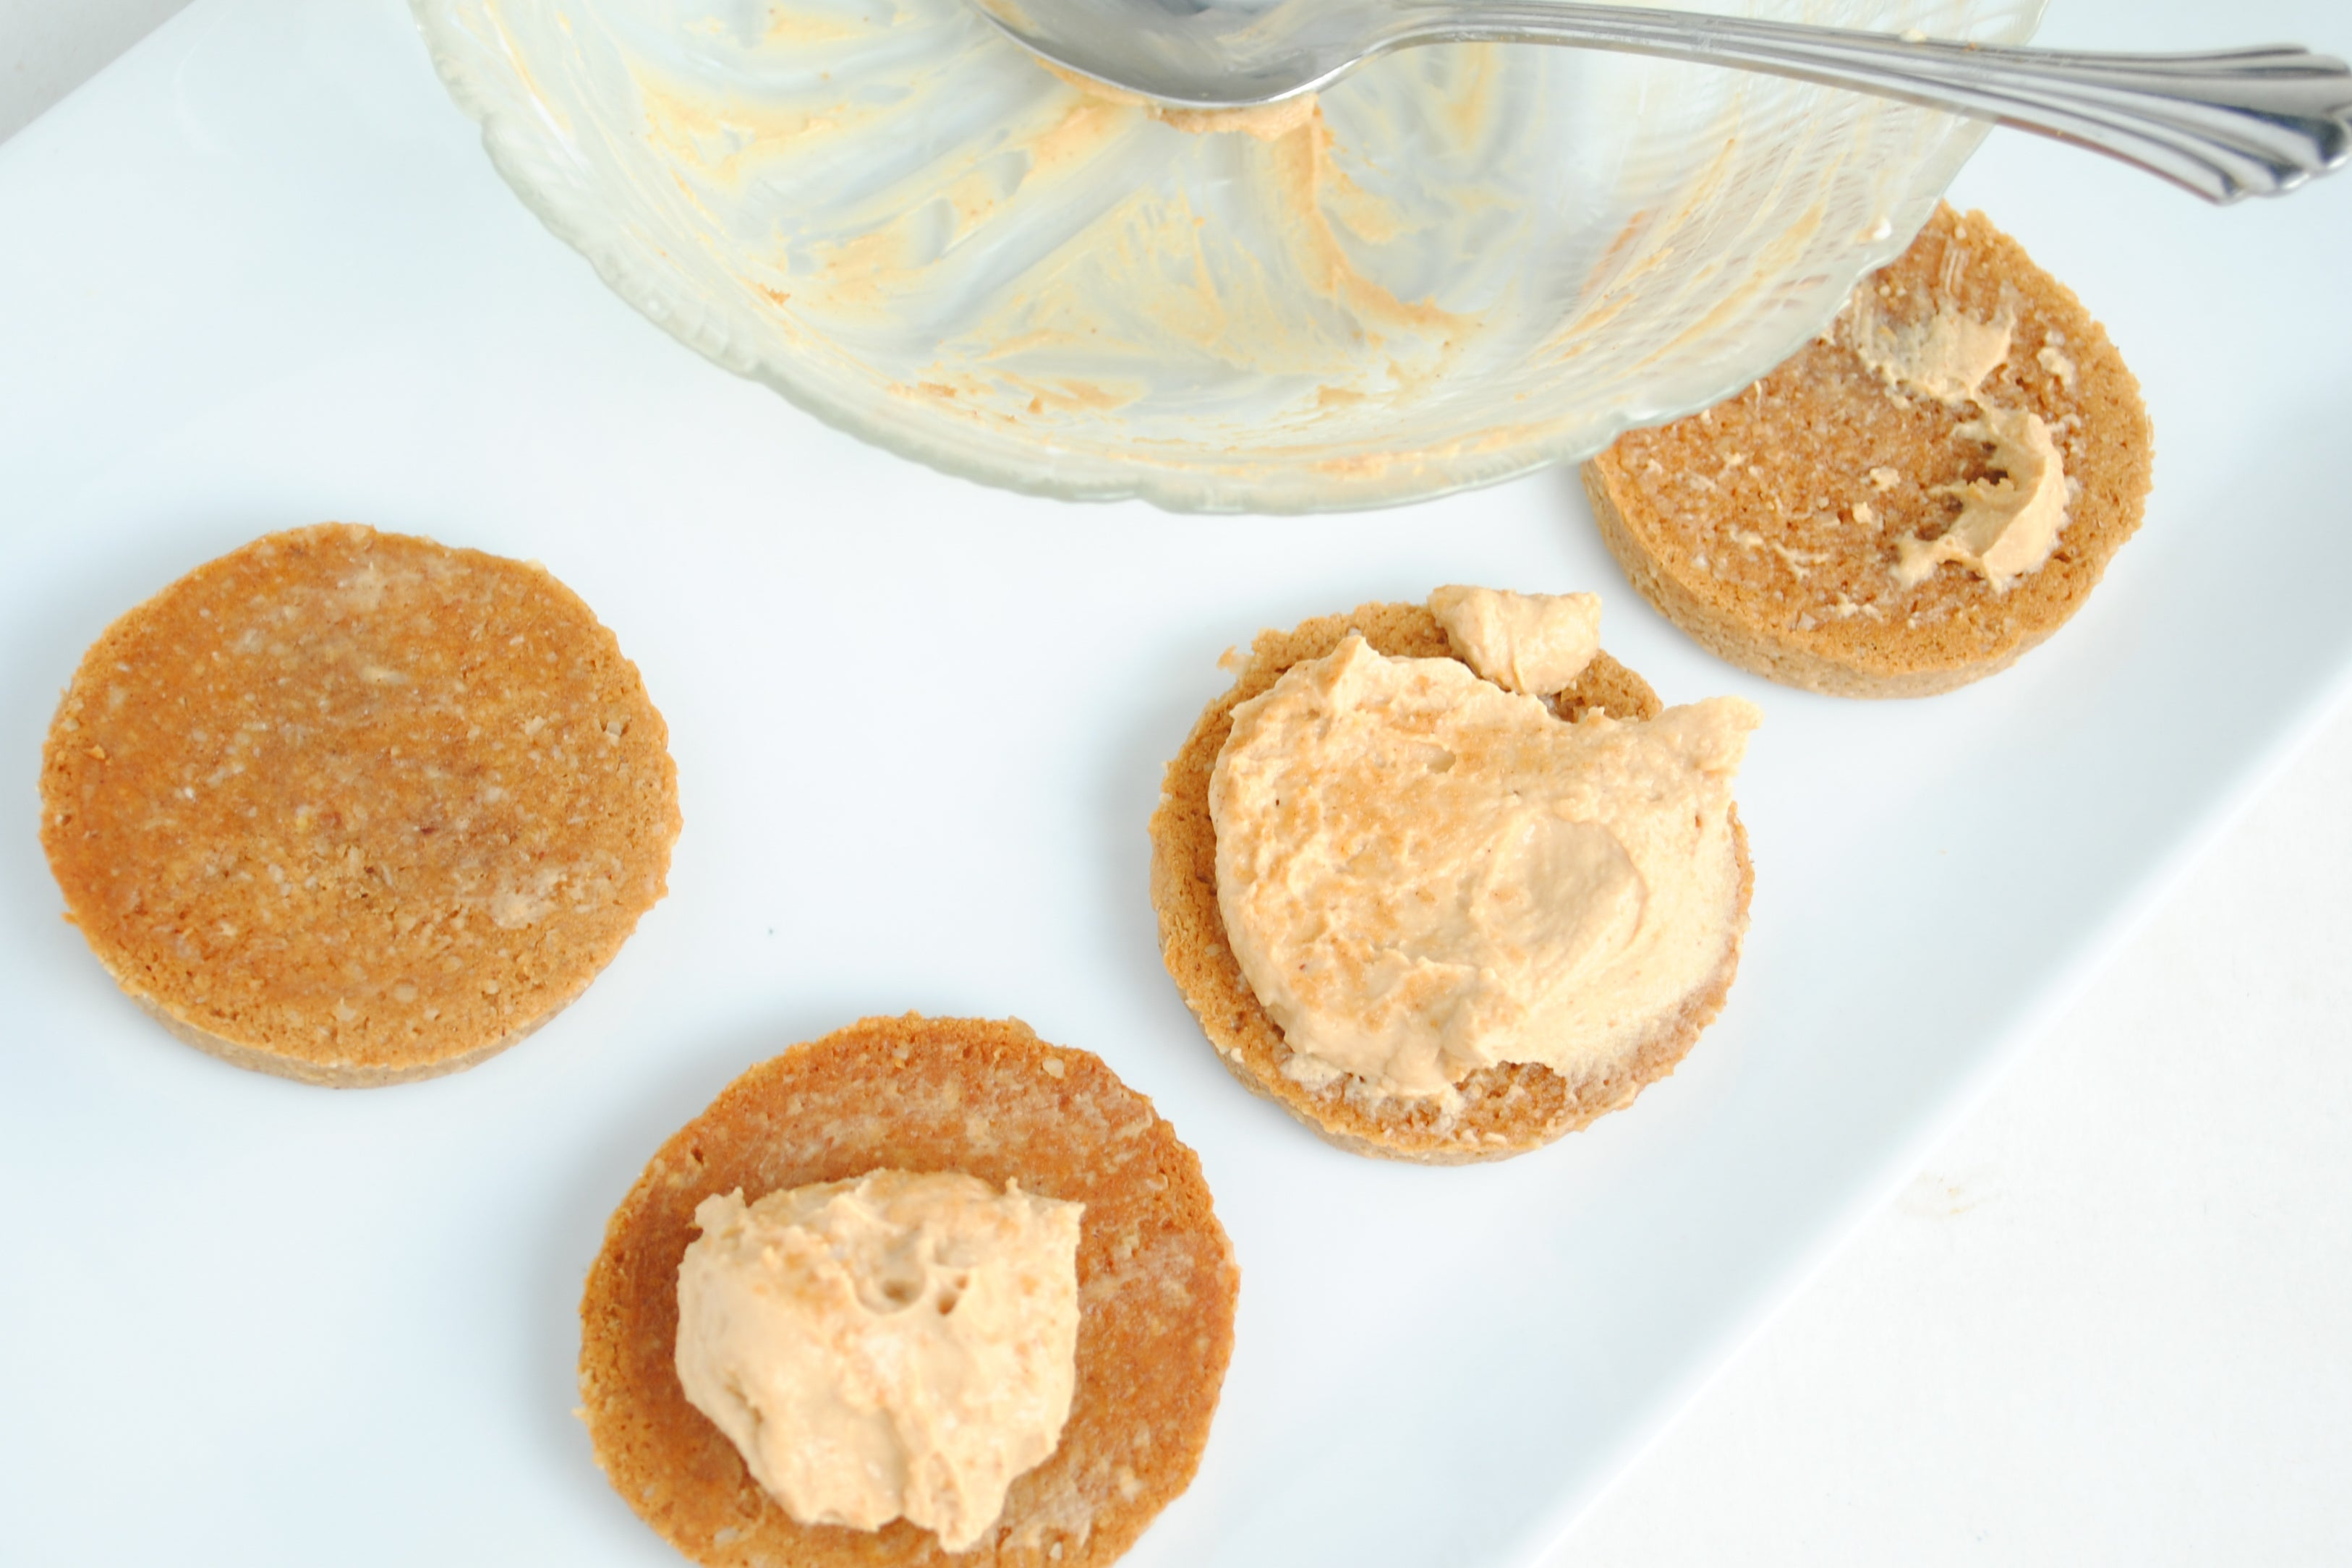 Double Peanut Butter Sandwich Cookies - Place about 1 1/2 tbsp. of filling into the middle 7 of the cookies